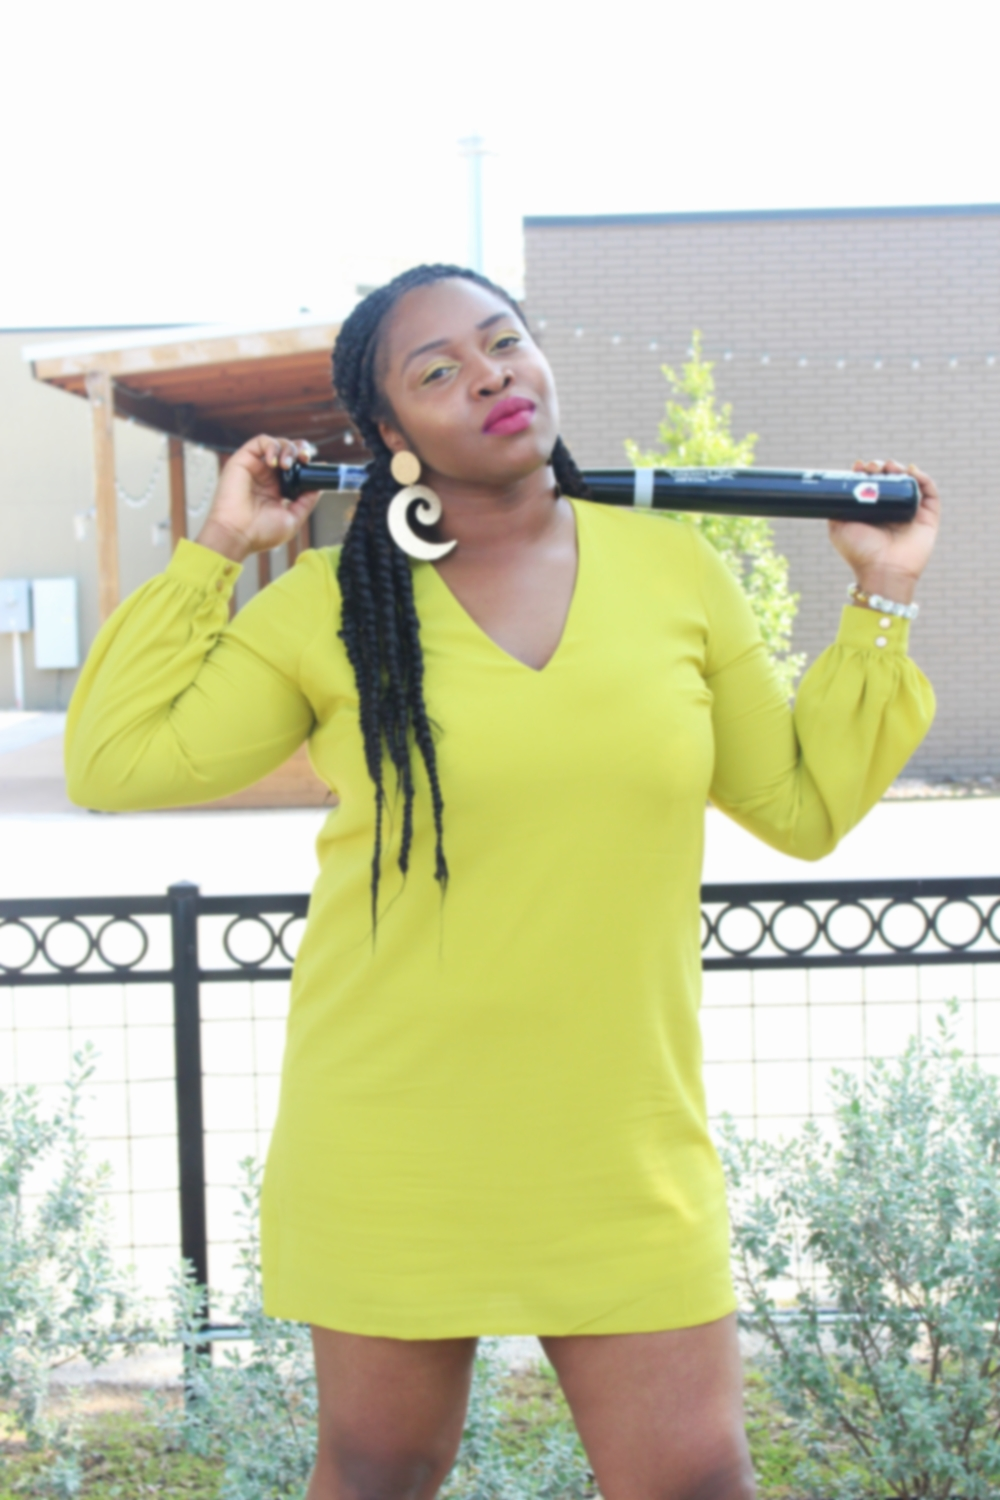 Outfit details: Dress- ASOS, Shoes- JustFab, Earrings & Bracelet- H&M/gifted....Baseball bat-funny store here, I went to several stores, and this is the largest one I could find!